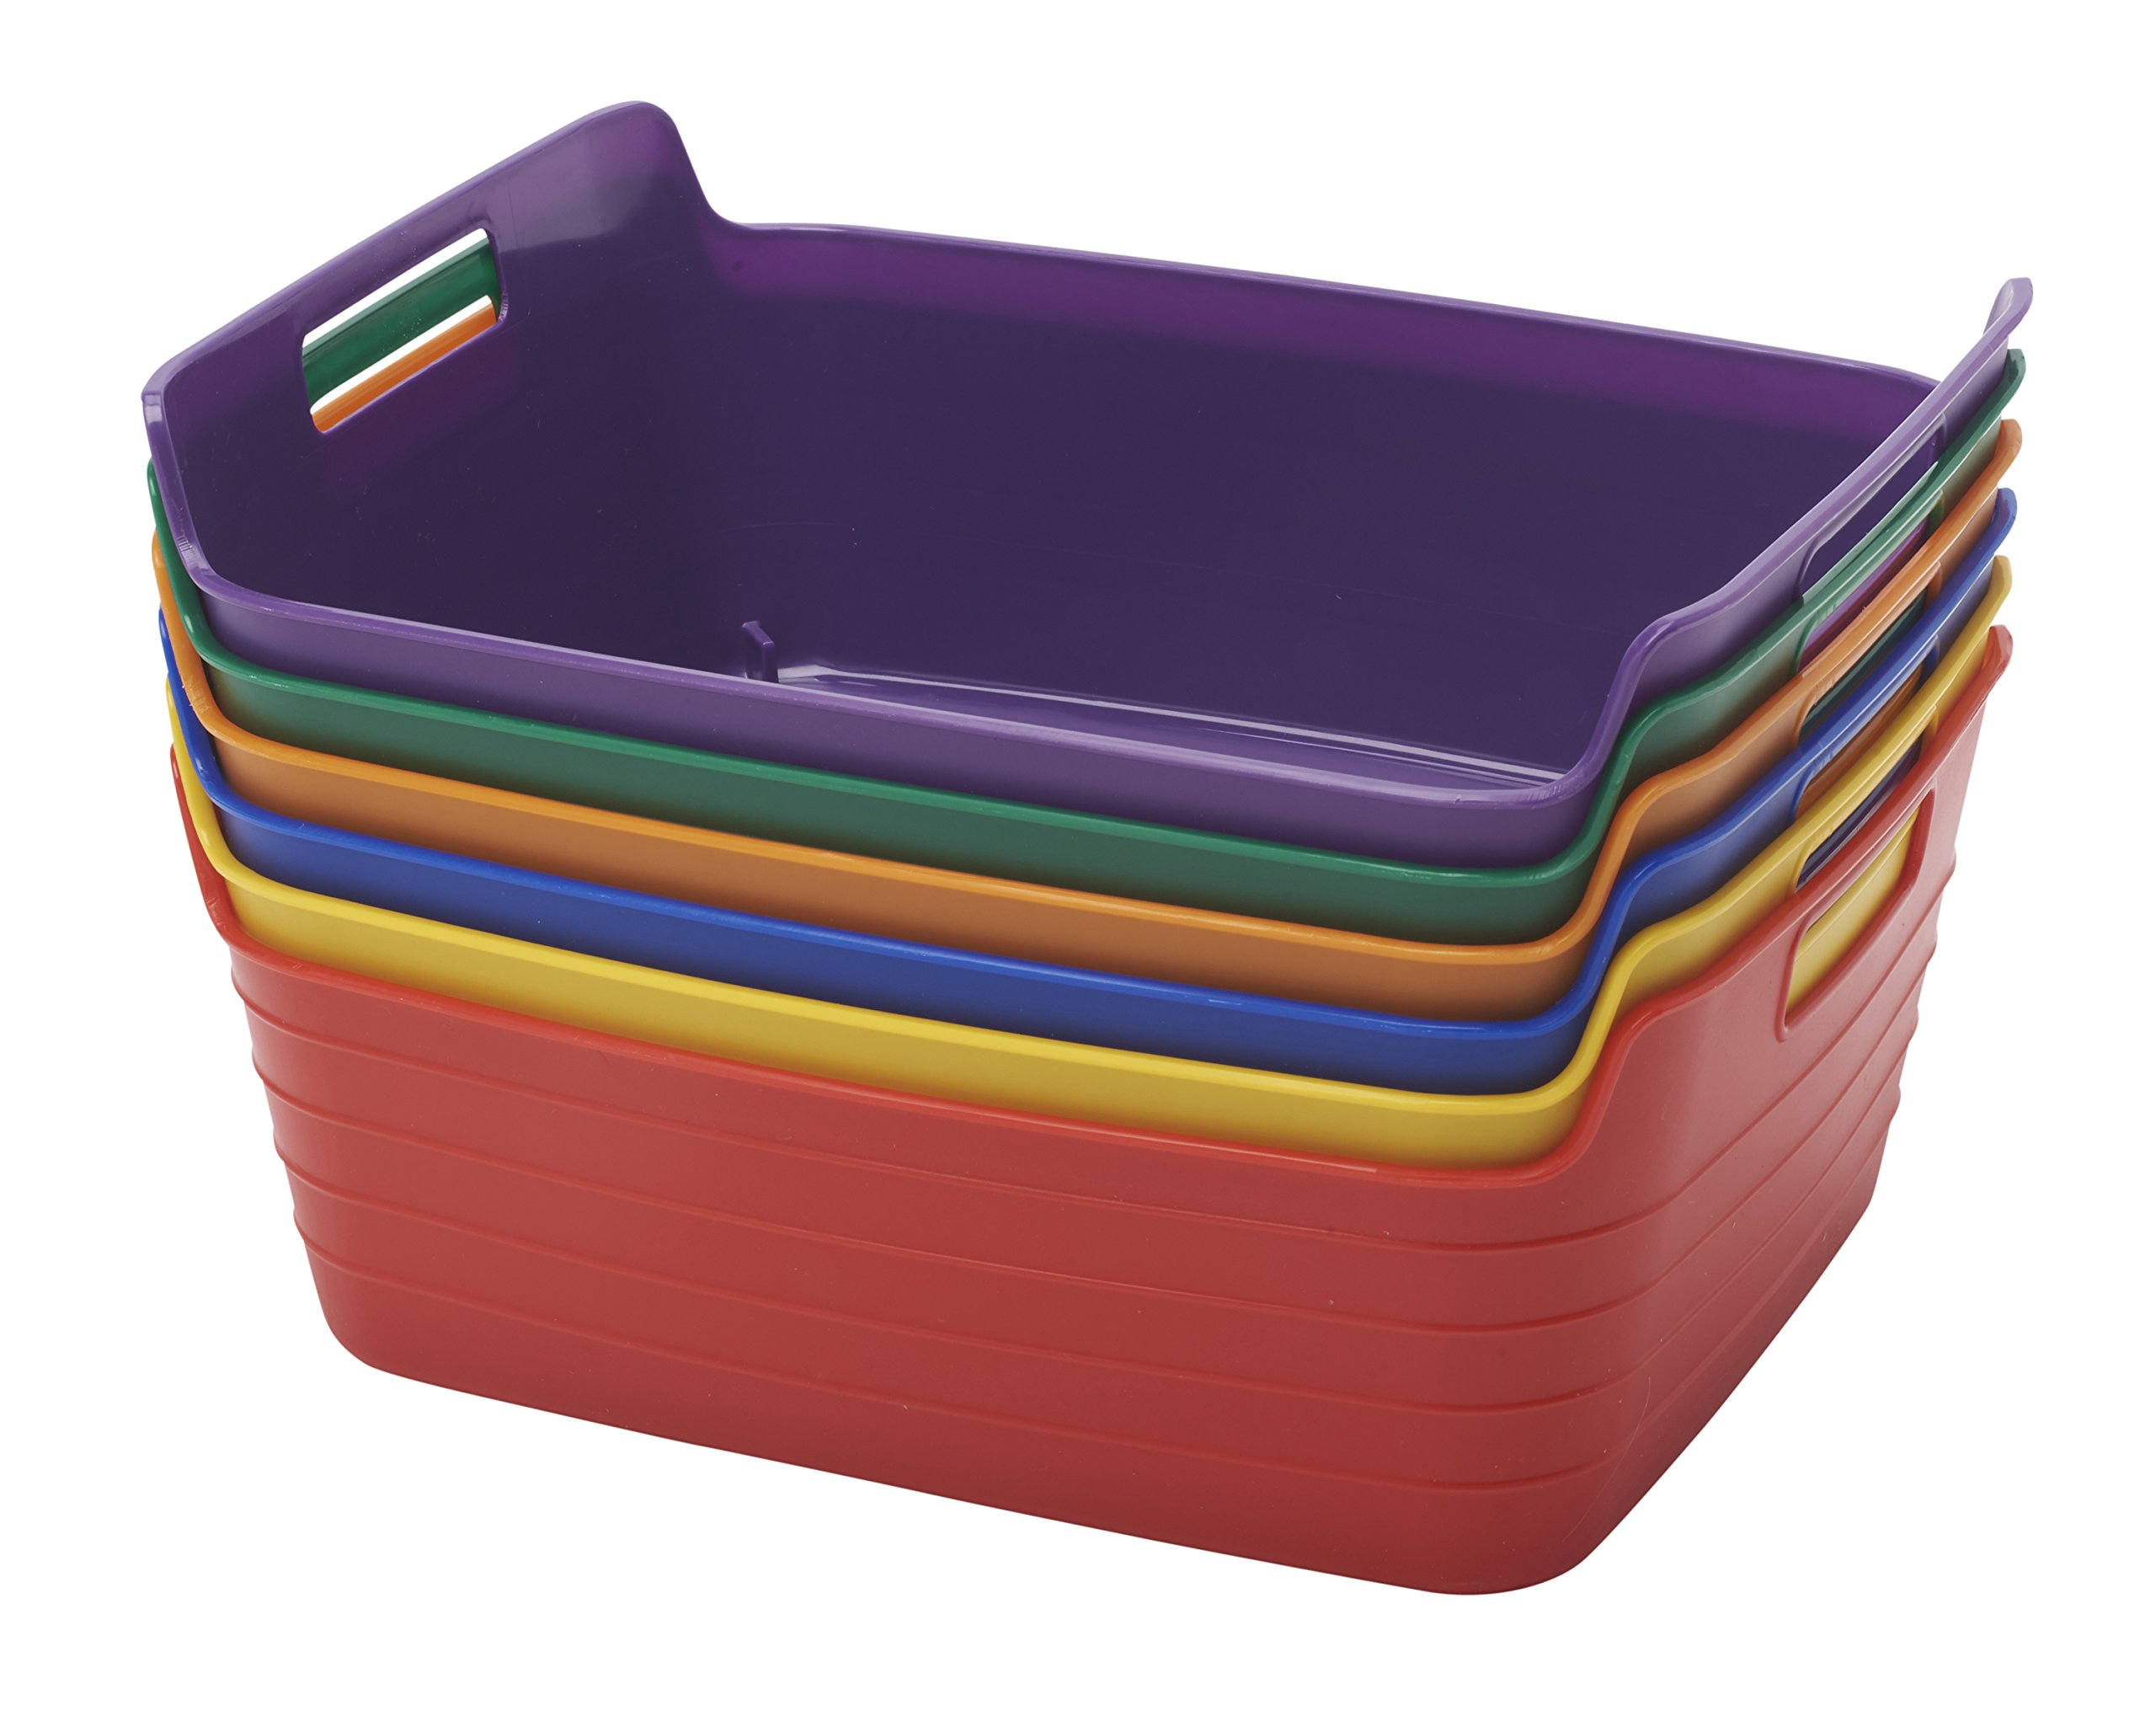 ECR4Kids Assorted Medium Bendi-Bins with Handles,Stackable Plastic Storage Bins for Toys and More, Assorted Colors (6-Pack) by ECR4Kids